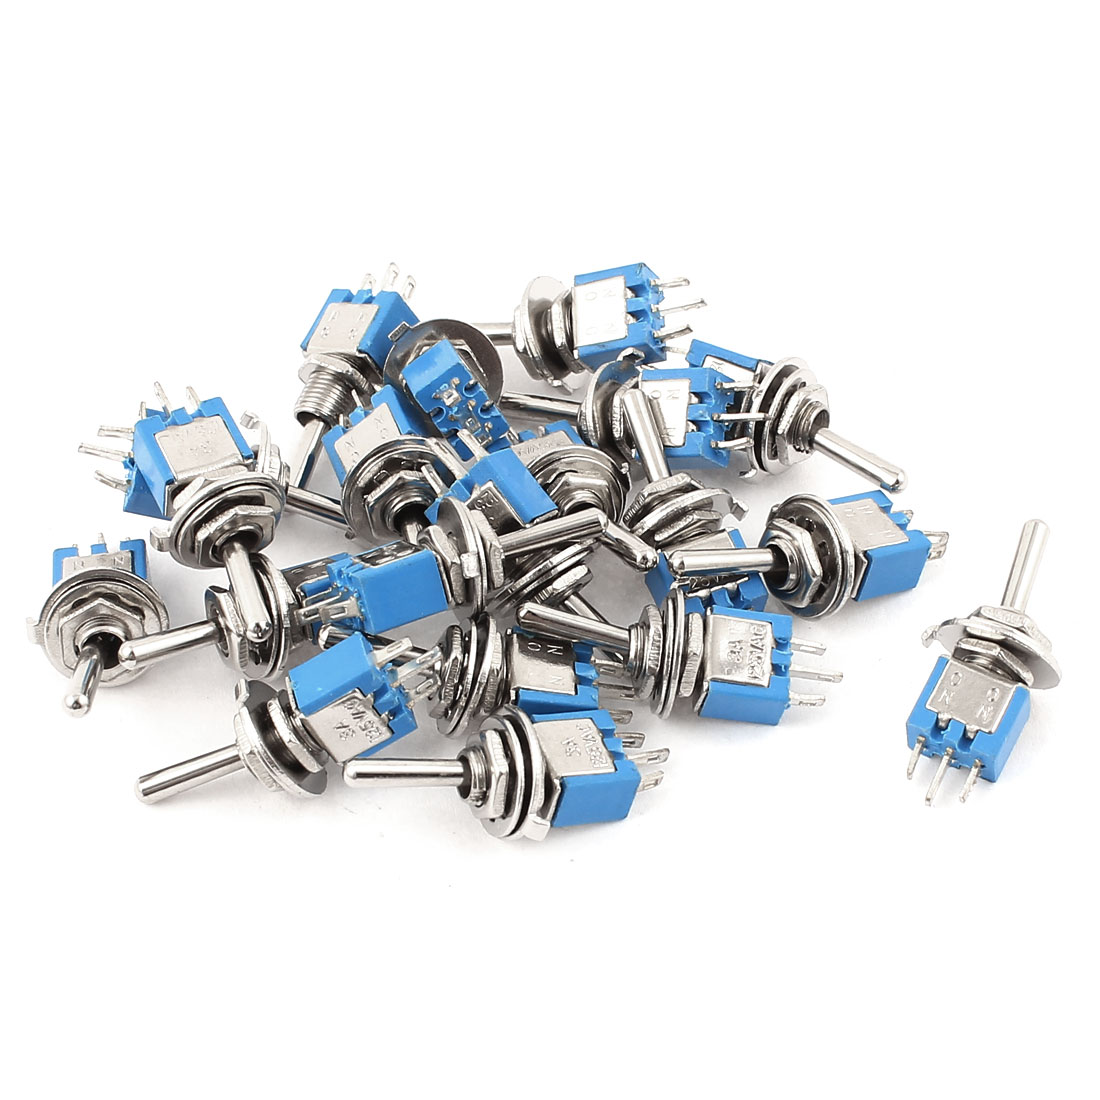 20Pcs AC 125V 3A Terminals 2 Position On-On 5mm Thread SPDT Latching Mini Toggle Switch Blue